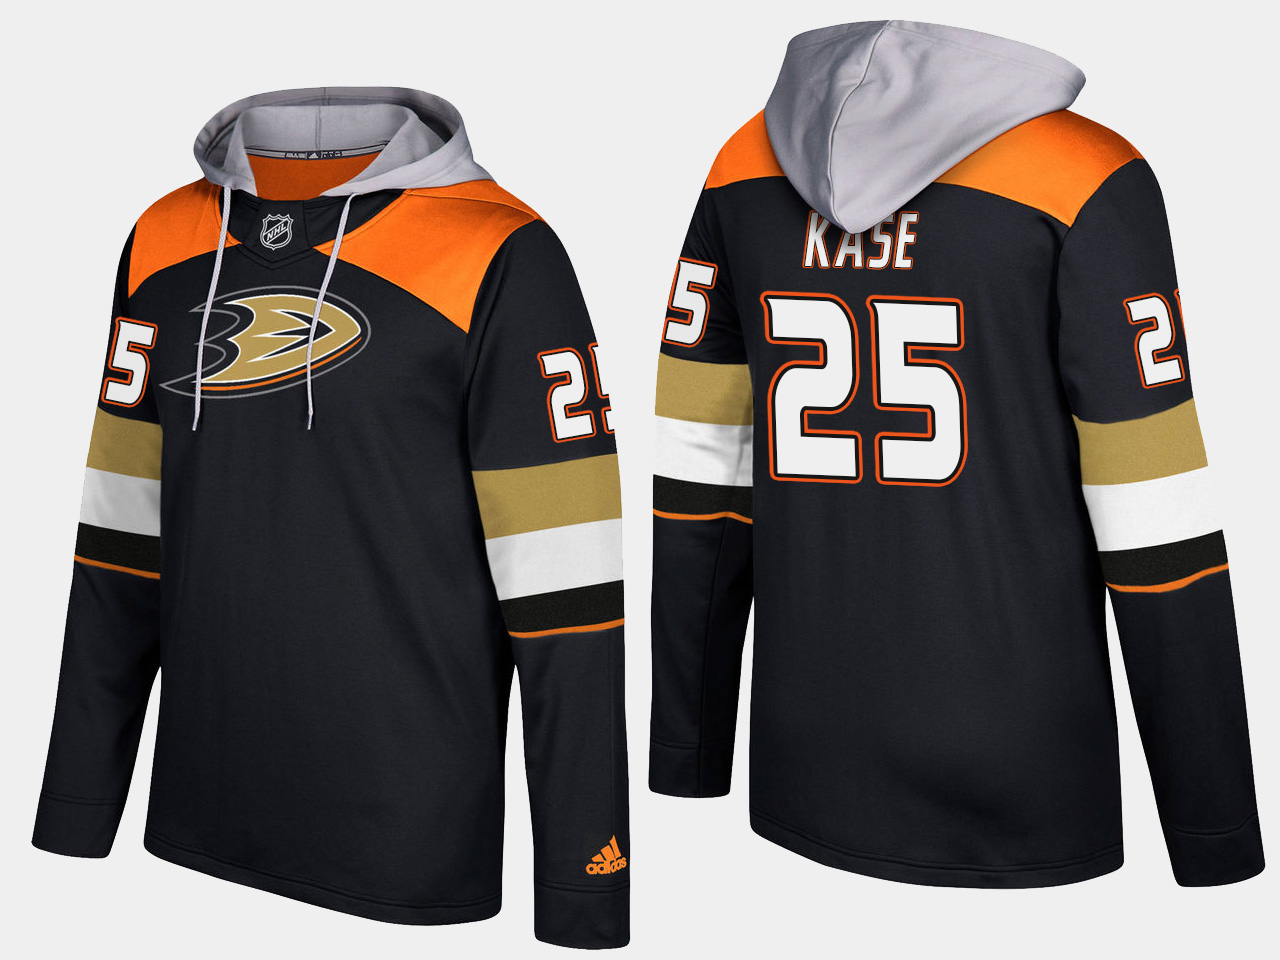 Men NHL Anaheim ducks 25 ondrej kase black hoodie